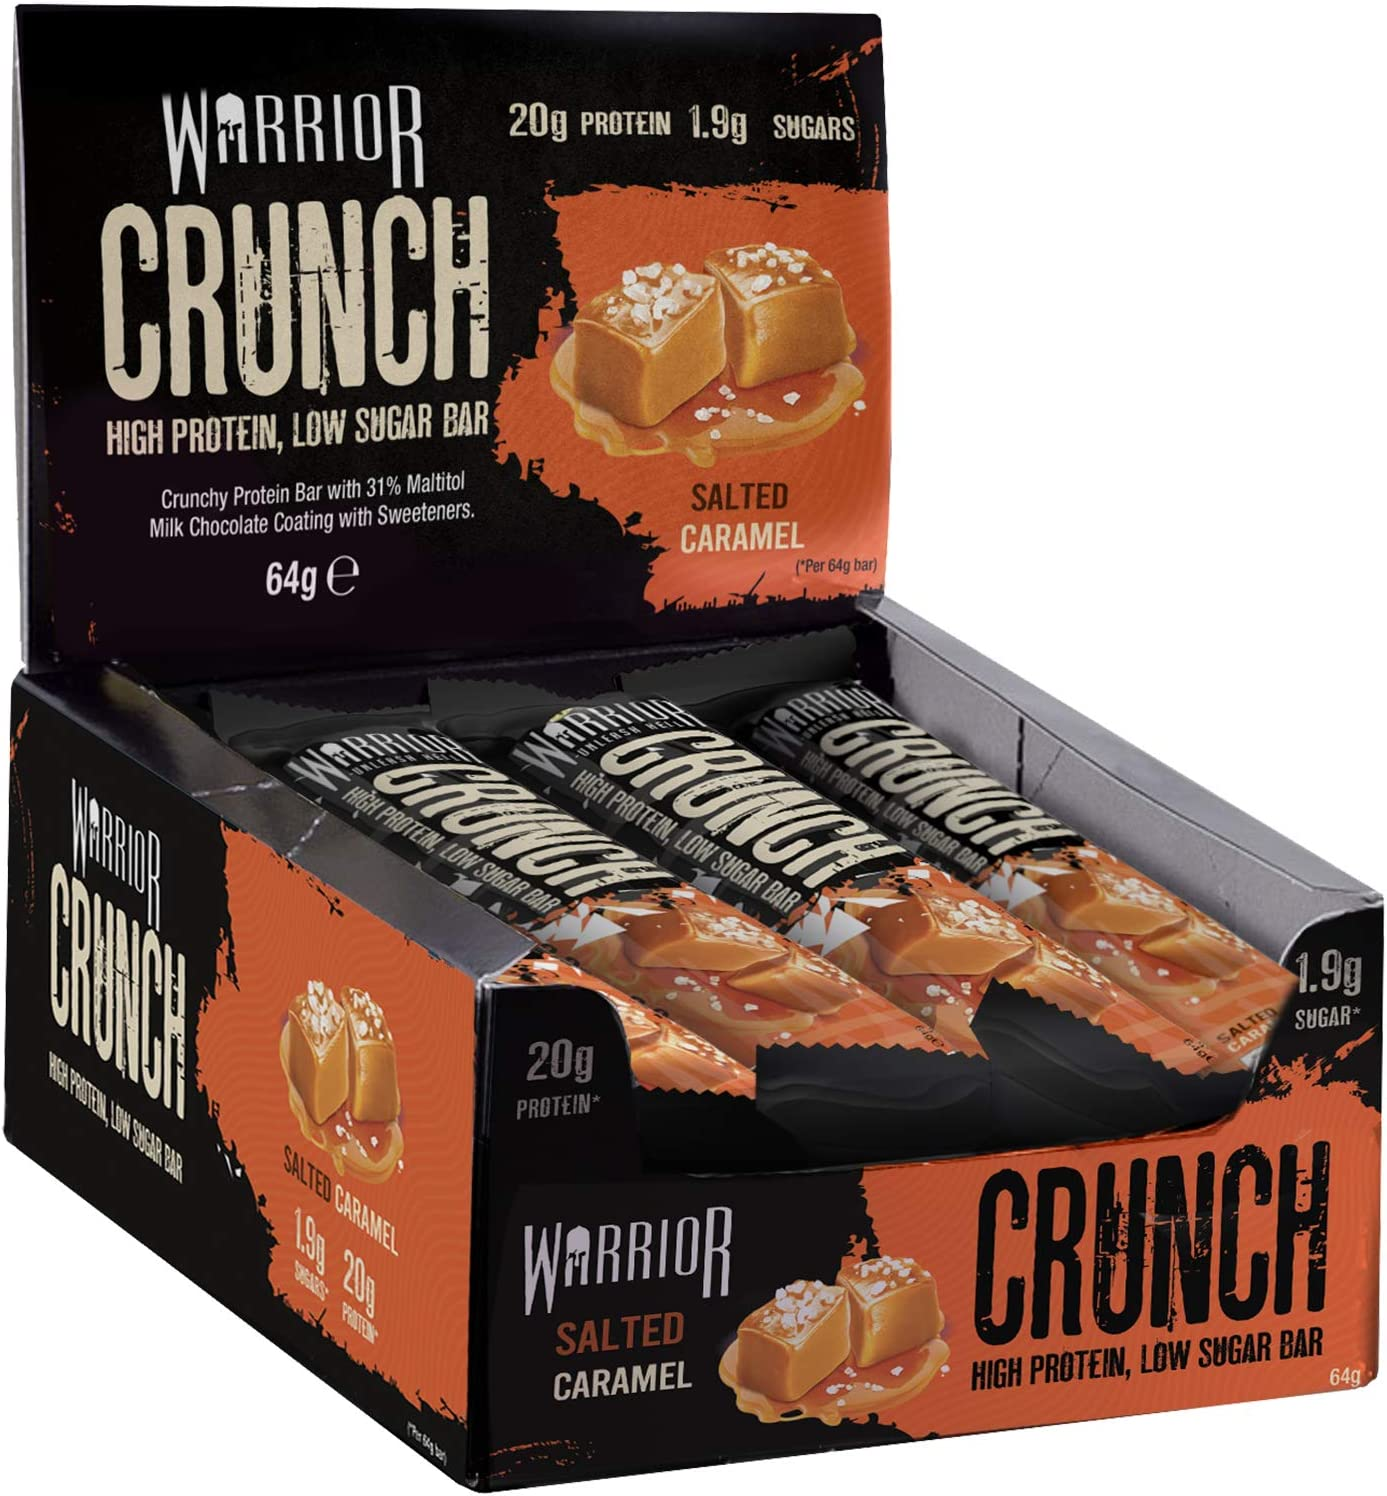 Warrior Crunch High Protein Low Carb g depot Caramel Limited price sale 64 Salted Bar